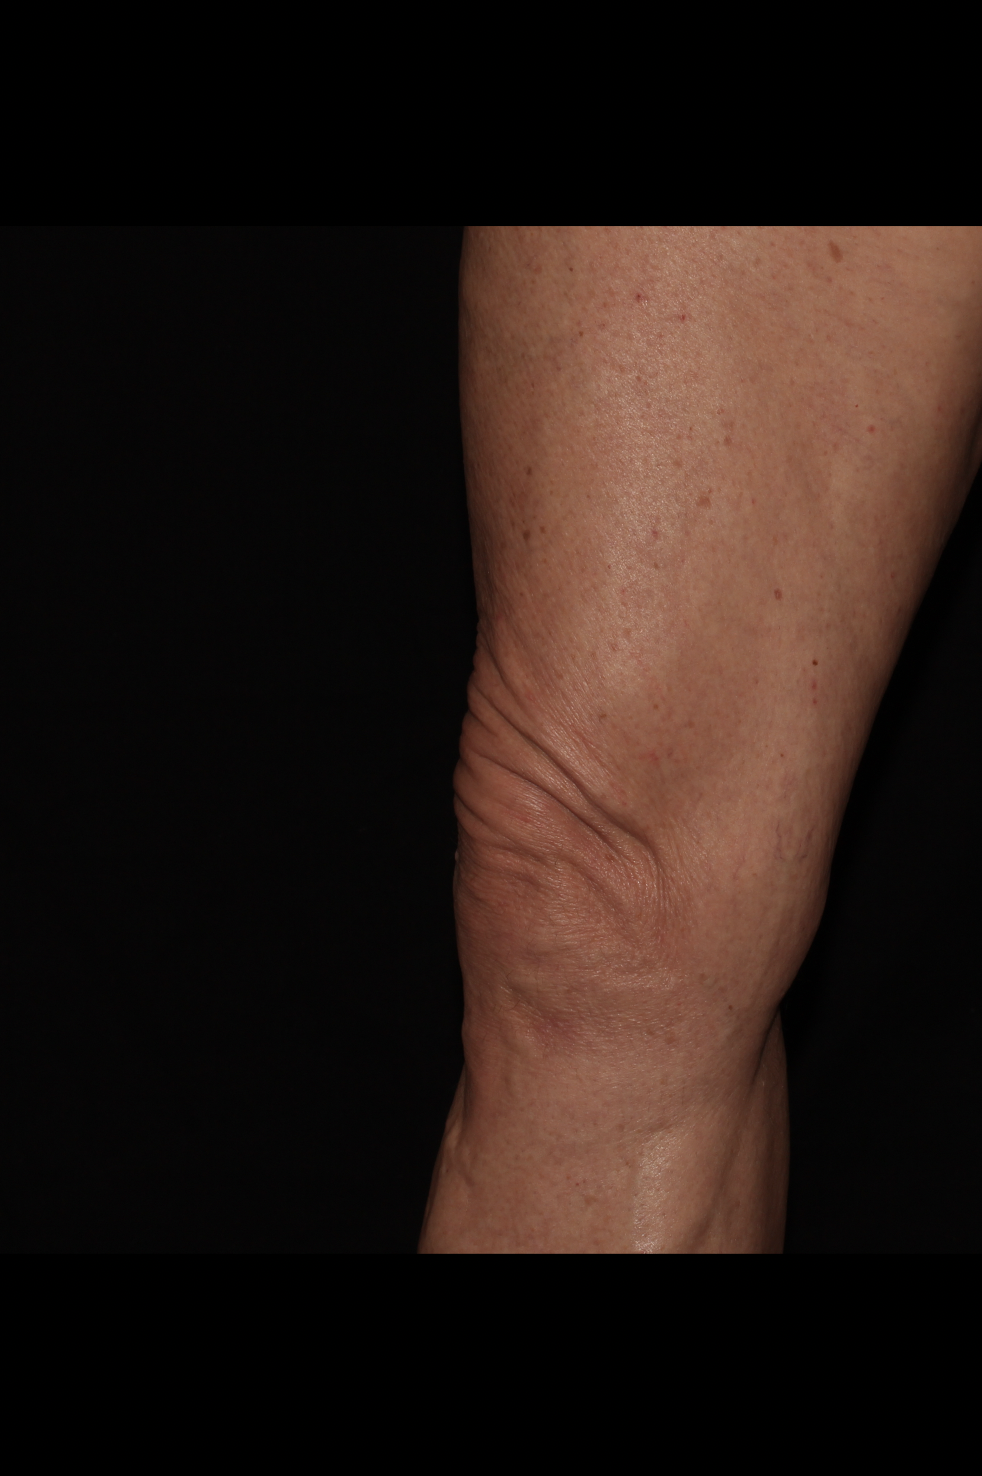 Before Thighs Procedure - Side View